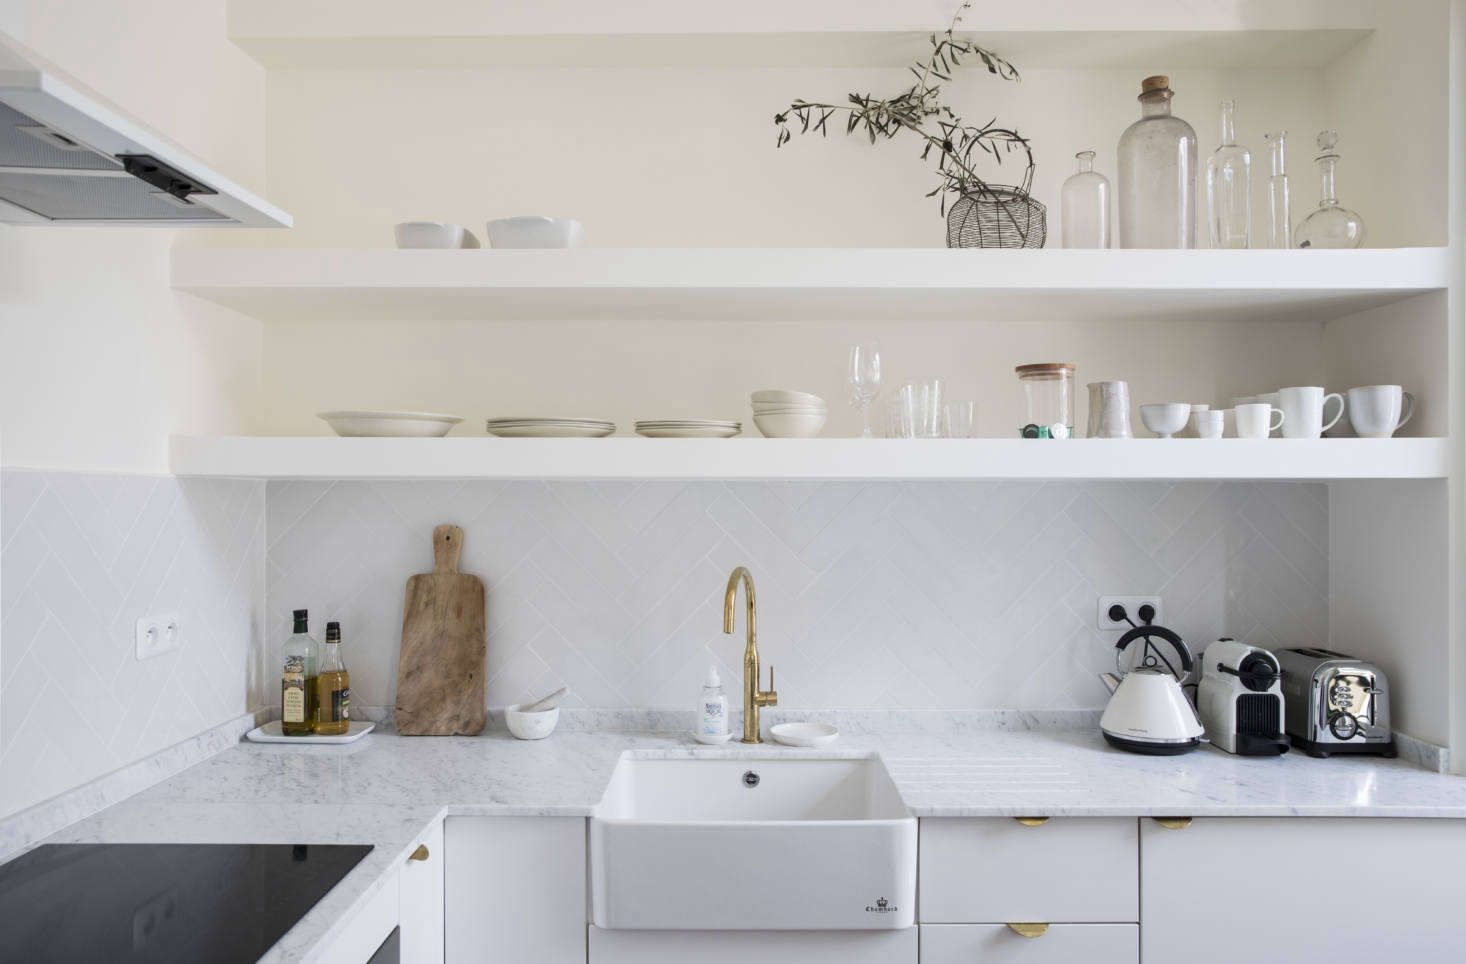 The farmhouse kitchen sink is from Darty and the white extractor hood is from La Peyre. The counters are Carrara marble sourced from Marbrerie Provencal.